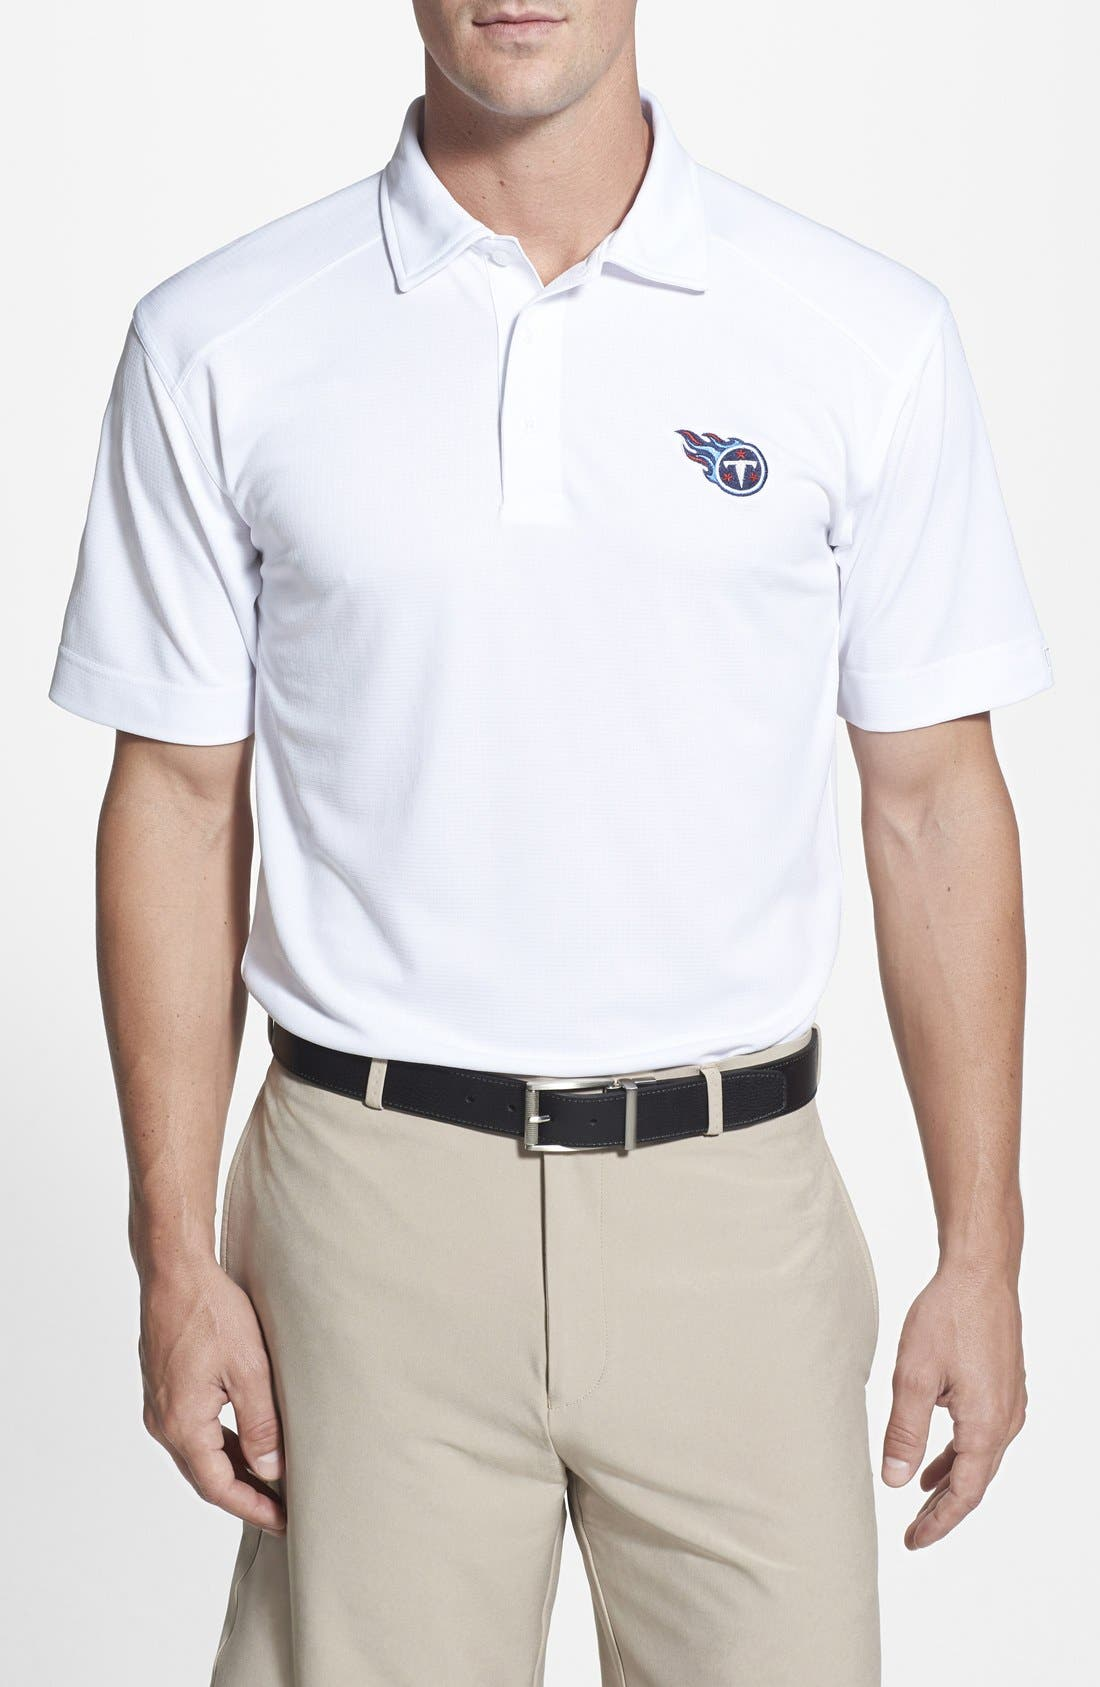 Cutter & Buck 'Tennessee Titans - Genre' DryTec Moisture Wicking Polo (Big & Tall)